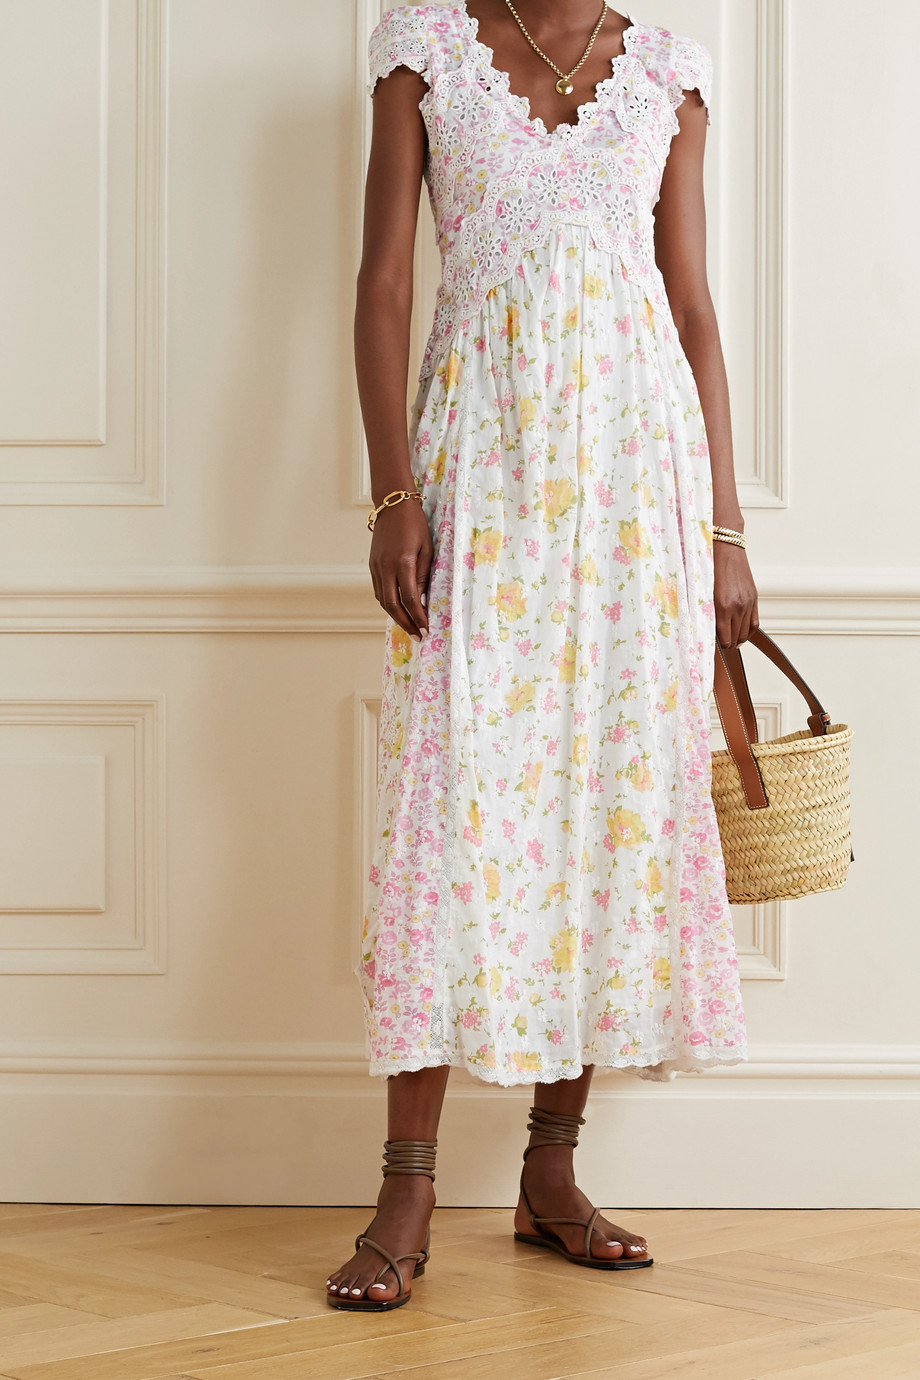 LoveShackFancy Archer crochet-trimmed floral-print broderie anglaise cotton dress